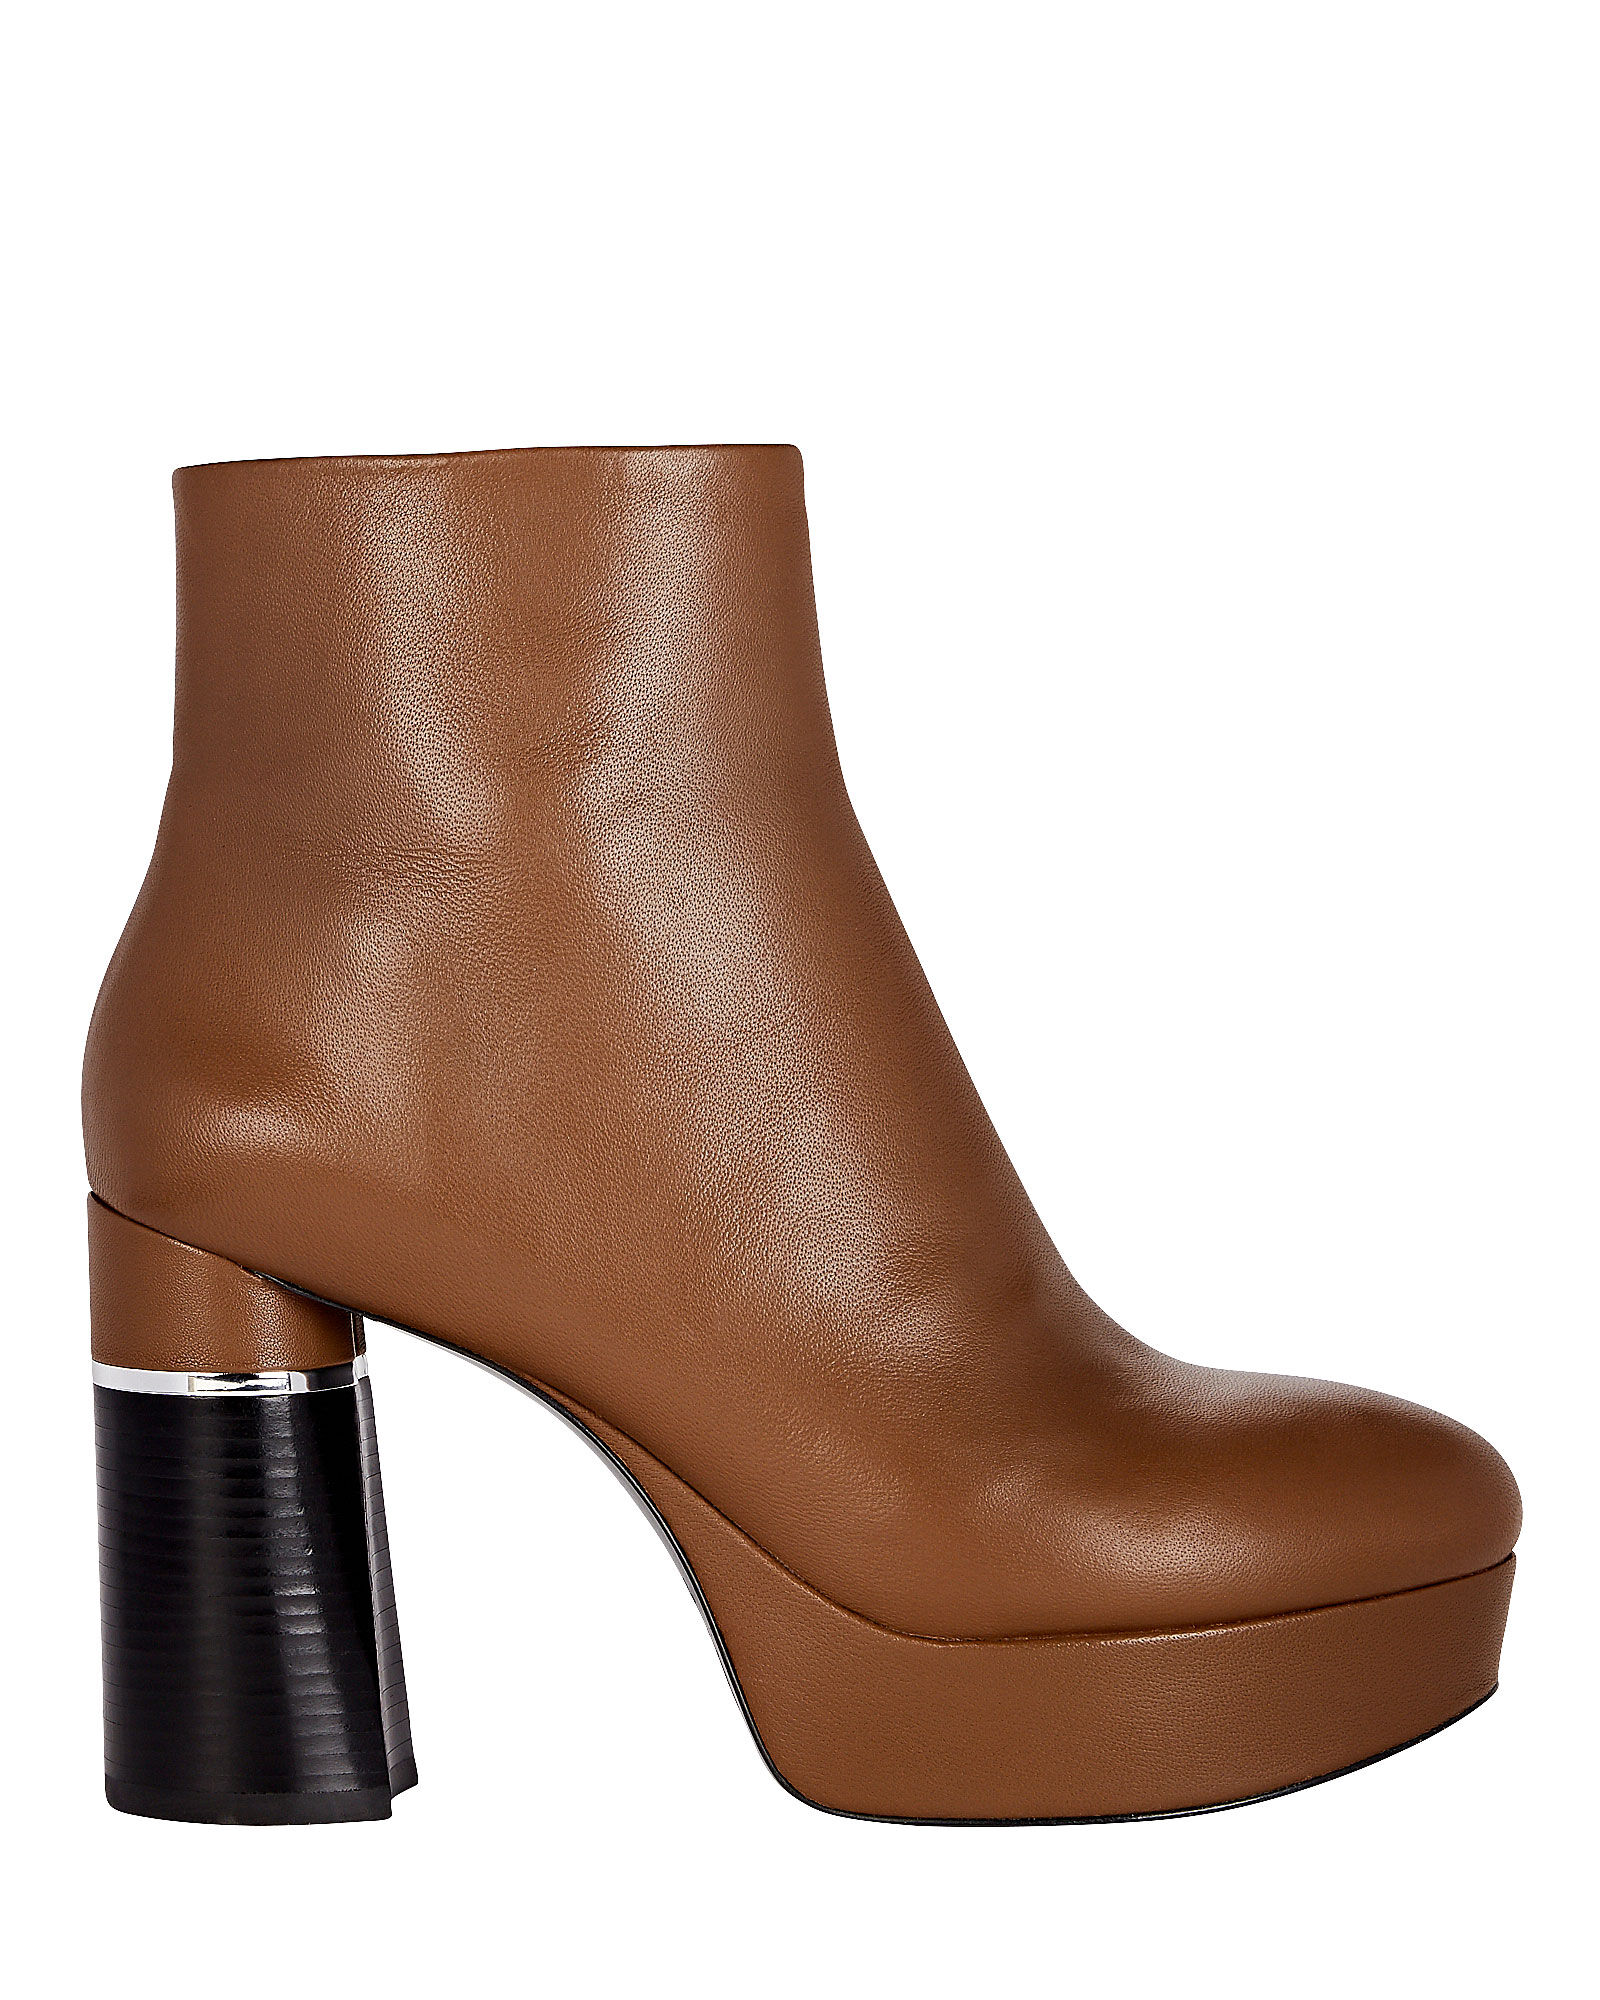 Ziggy Platform Booties, BROWN, hi-res